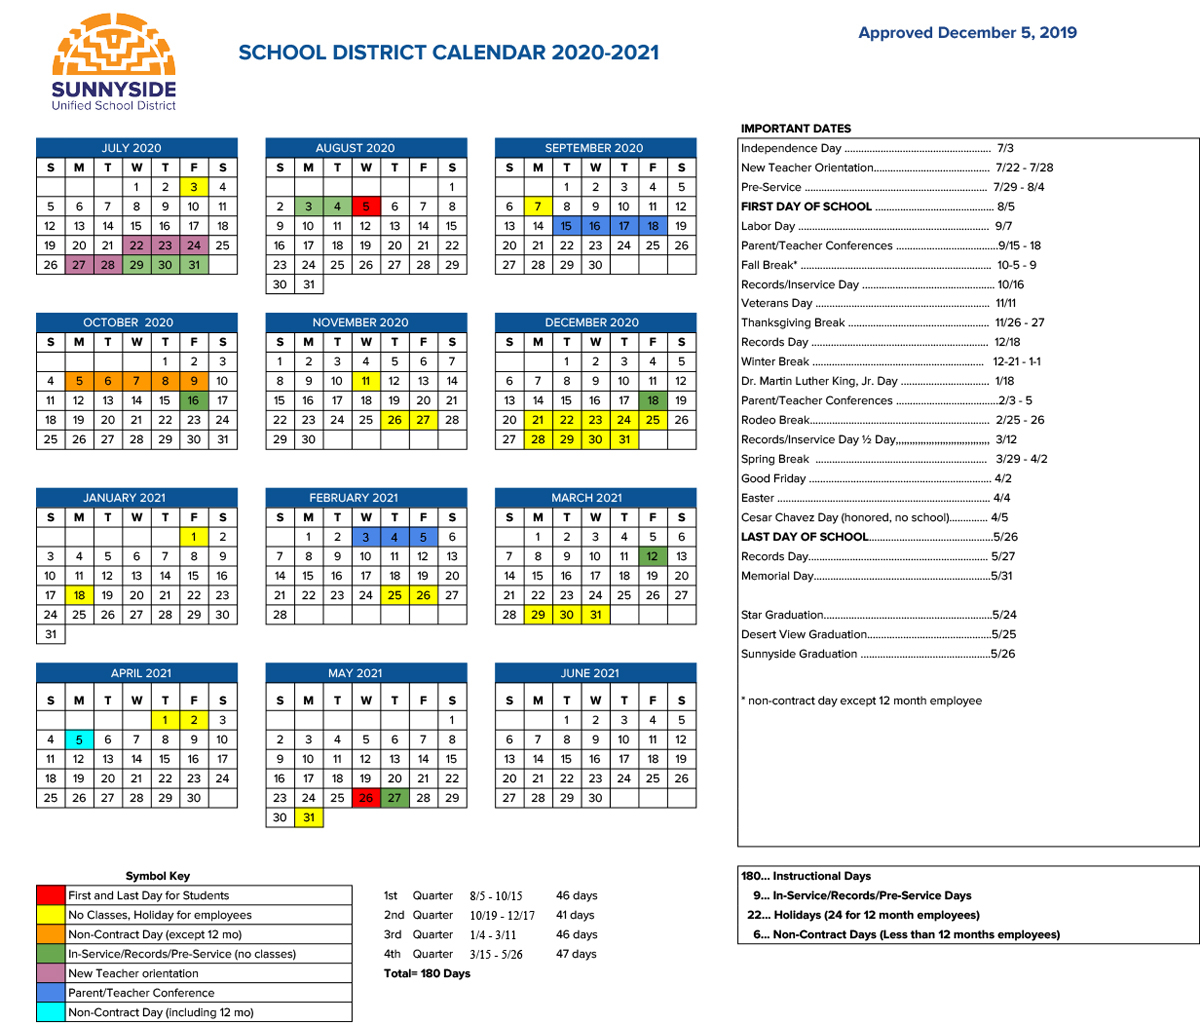 Academic Calendar | Sunnyside Unified School District With Calendar Year 2021 Department Of Education